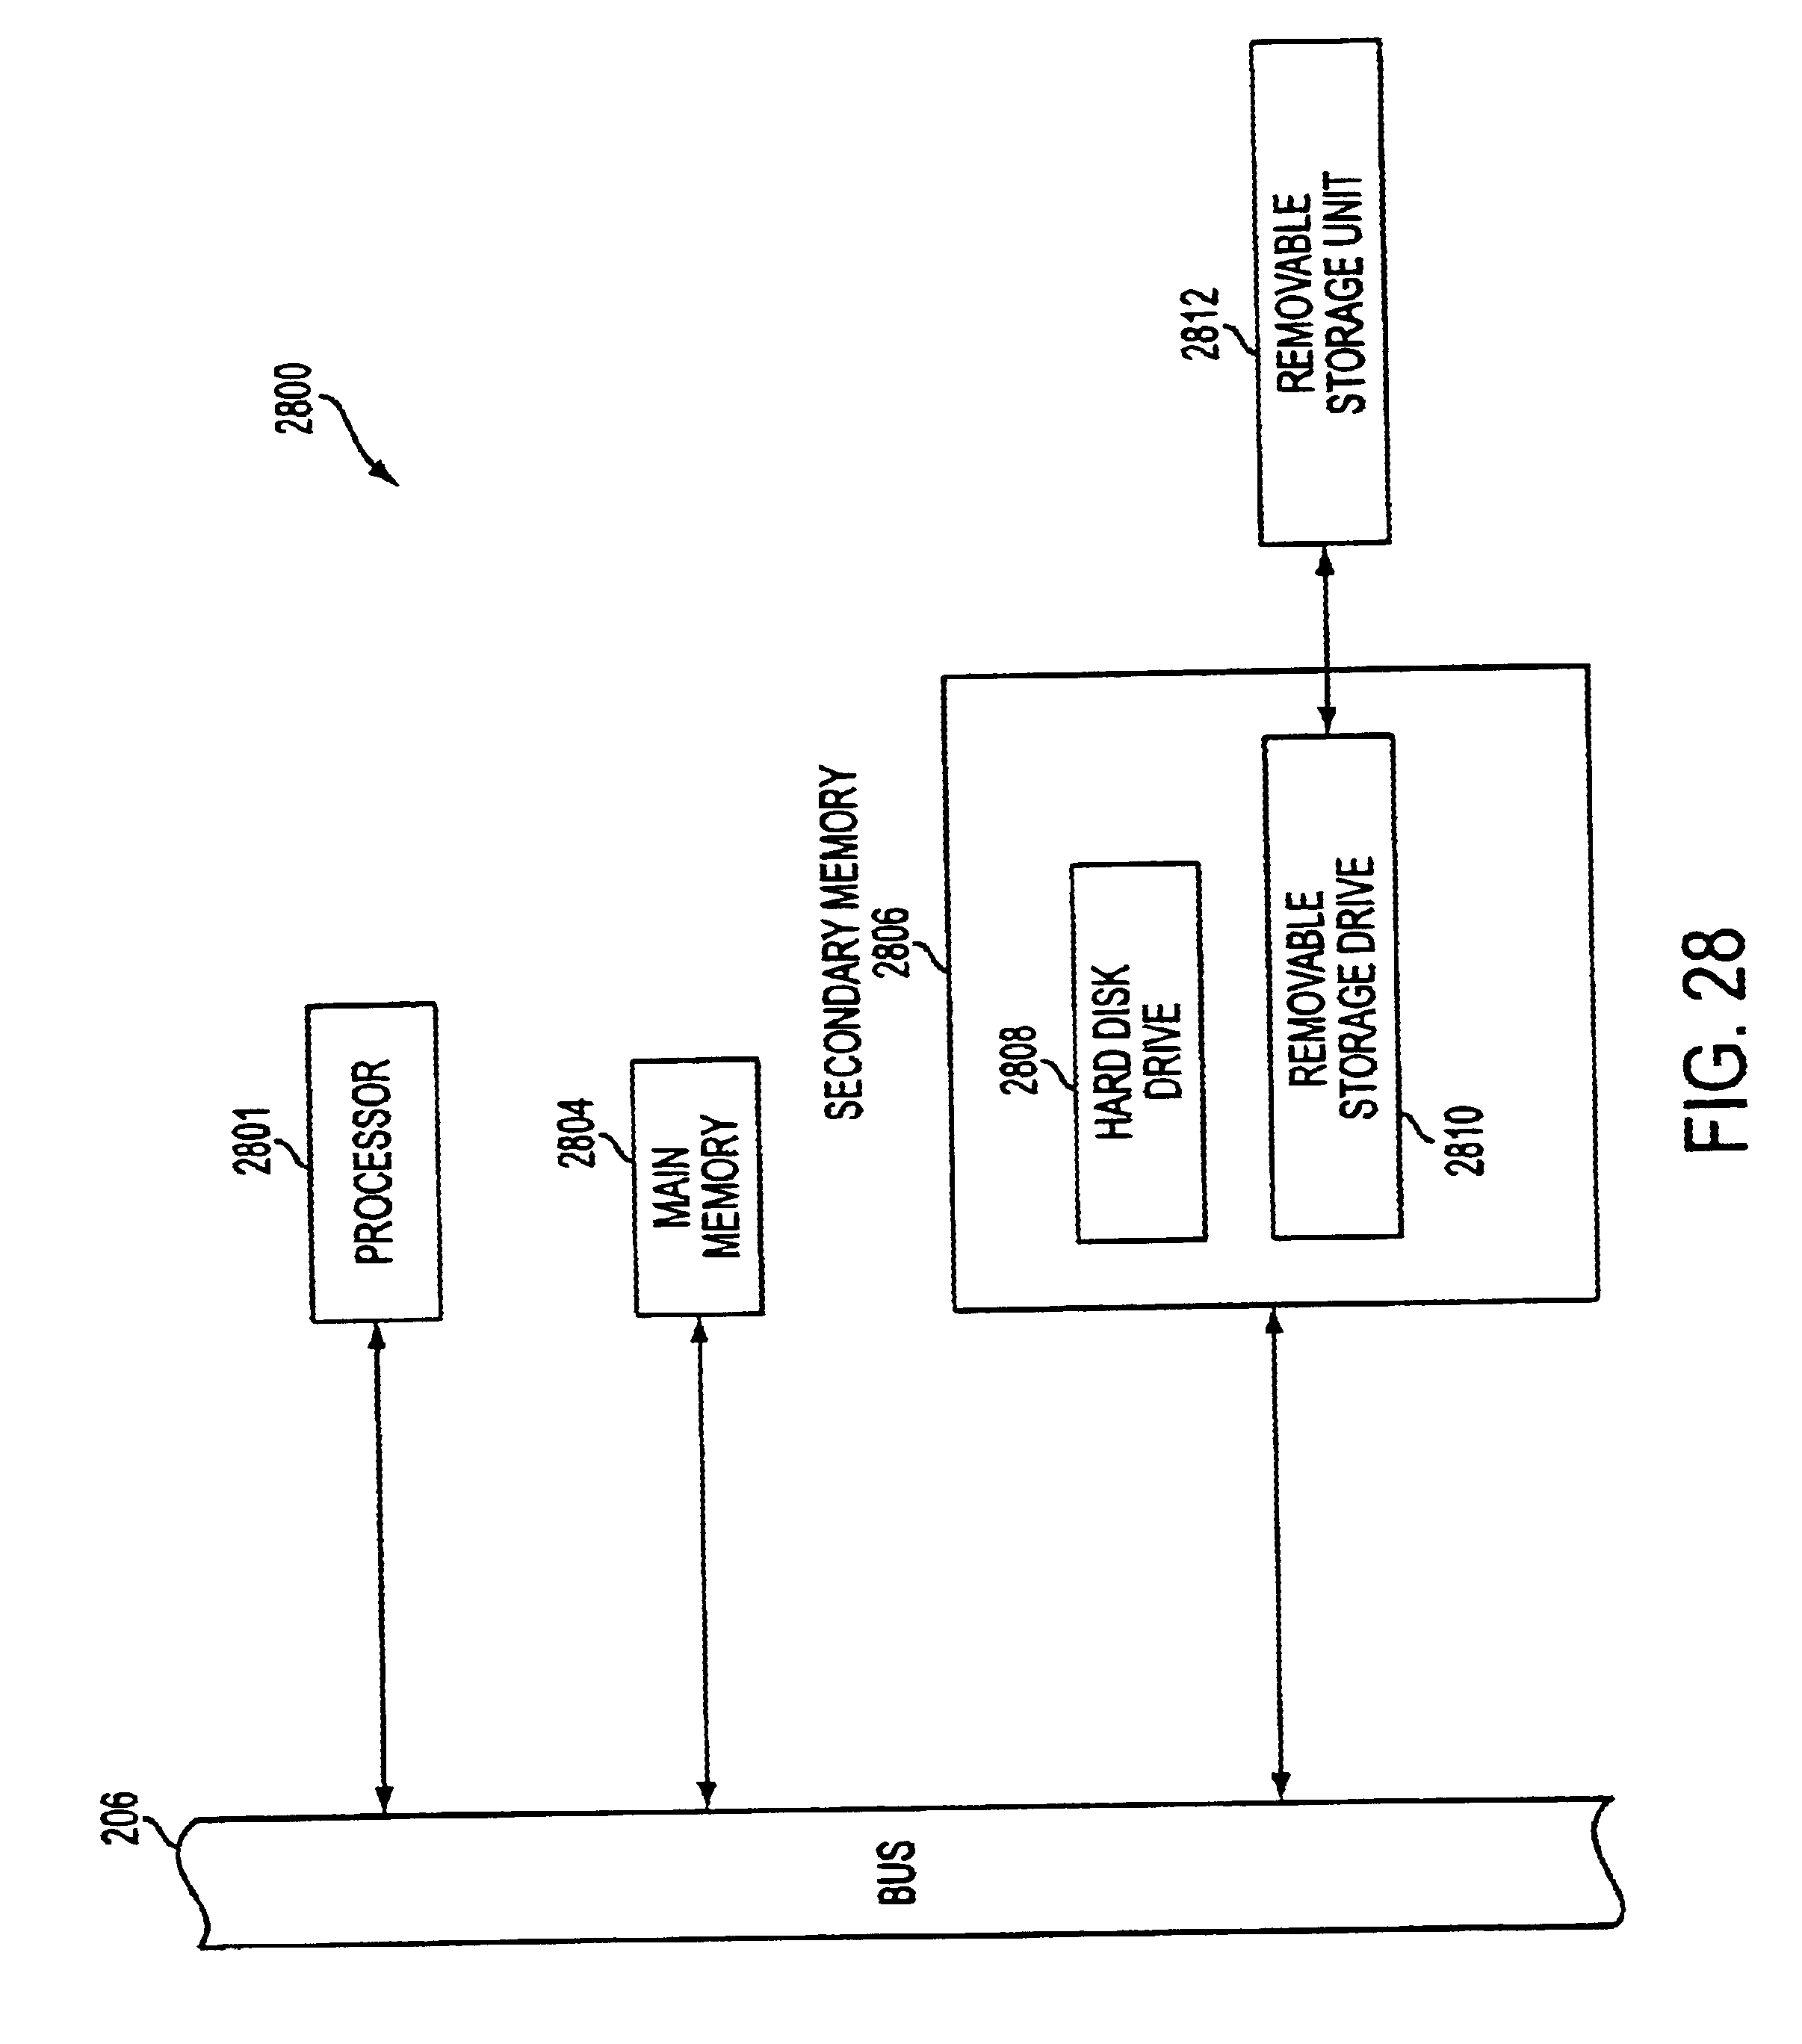 Patent Us 6671818 B1 Ford 2810 Wiring Diagram Images